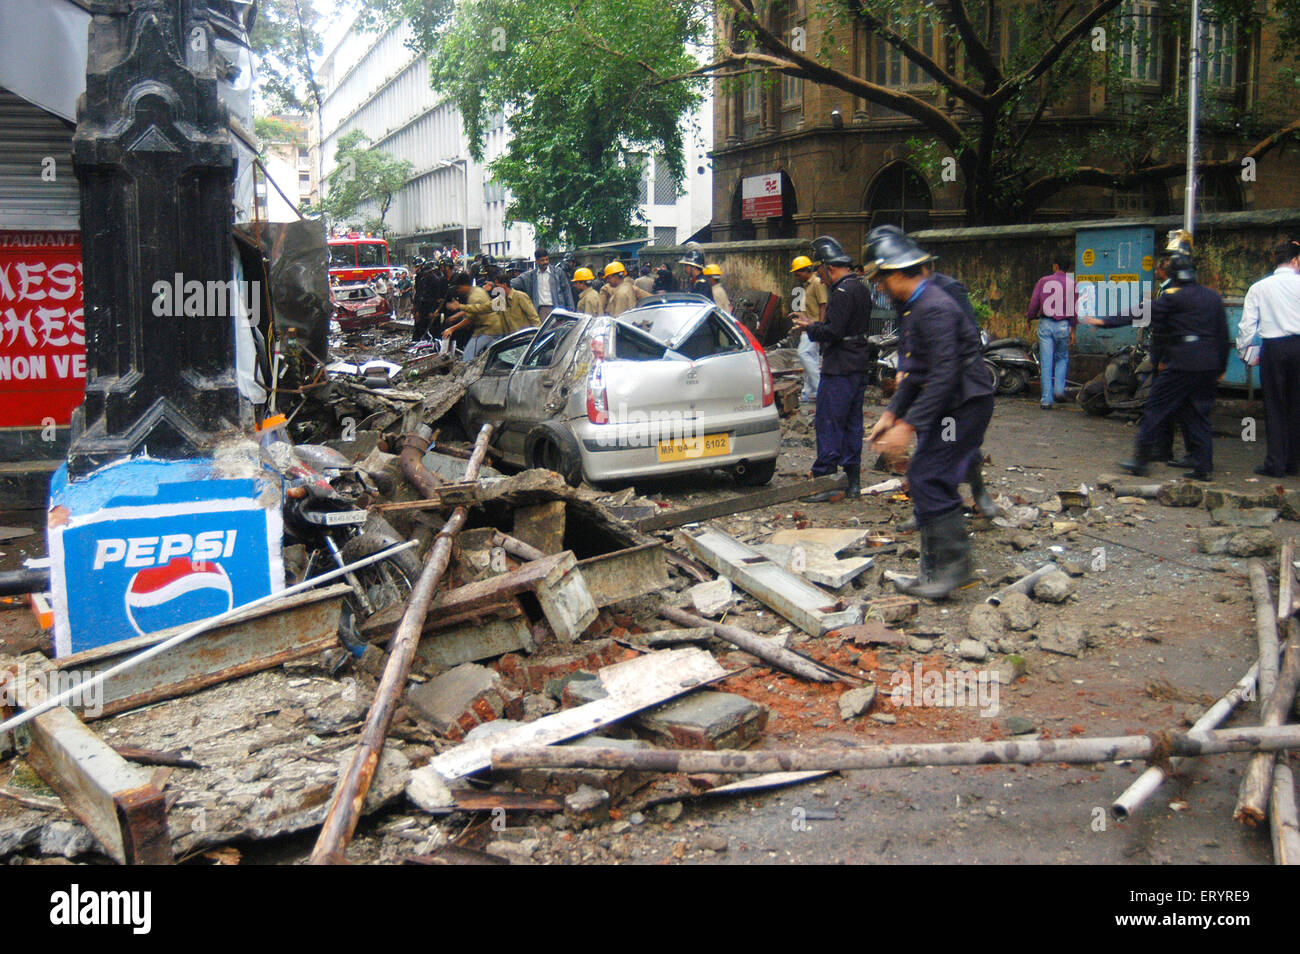 Fire brigade officers clear concrete debris fallen on vehicle part of heritage building Esplanade Mansion collapse - Stock Image